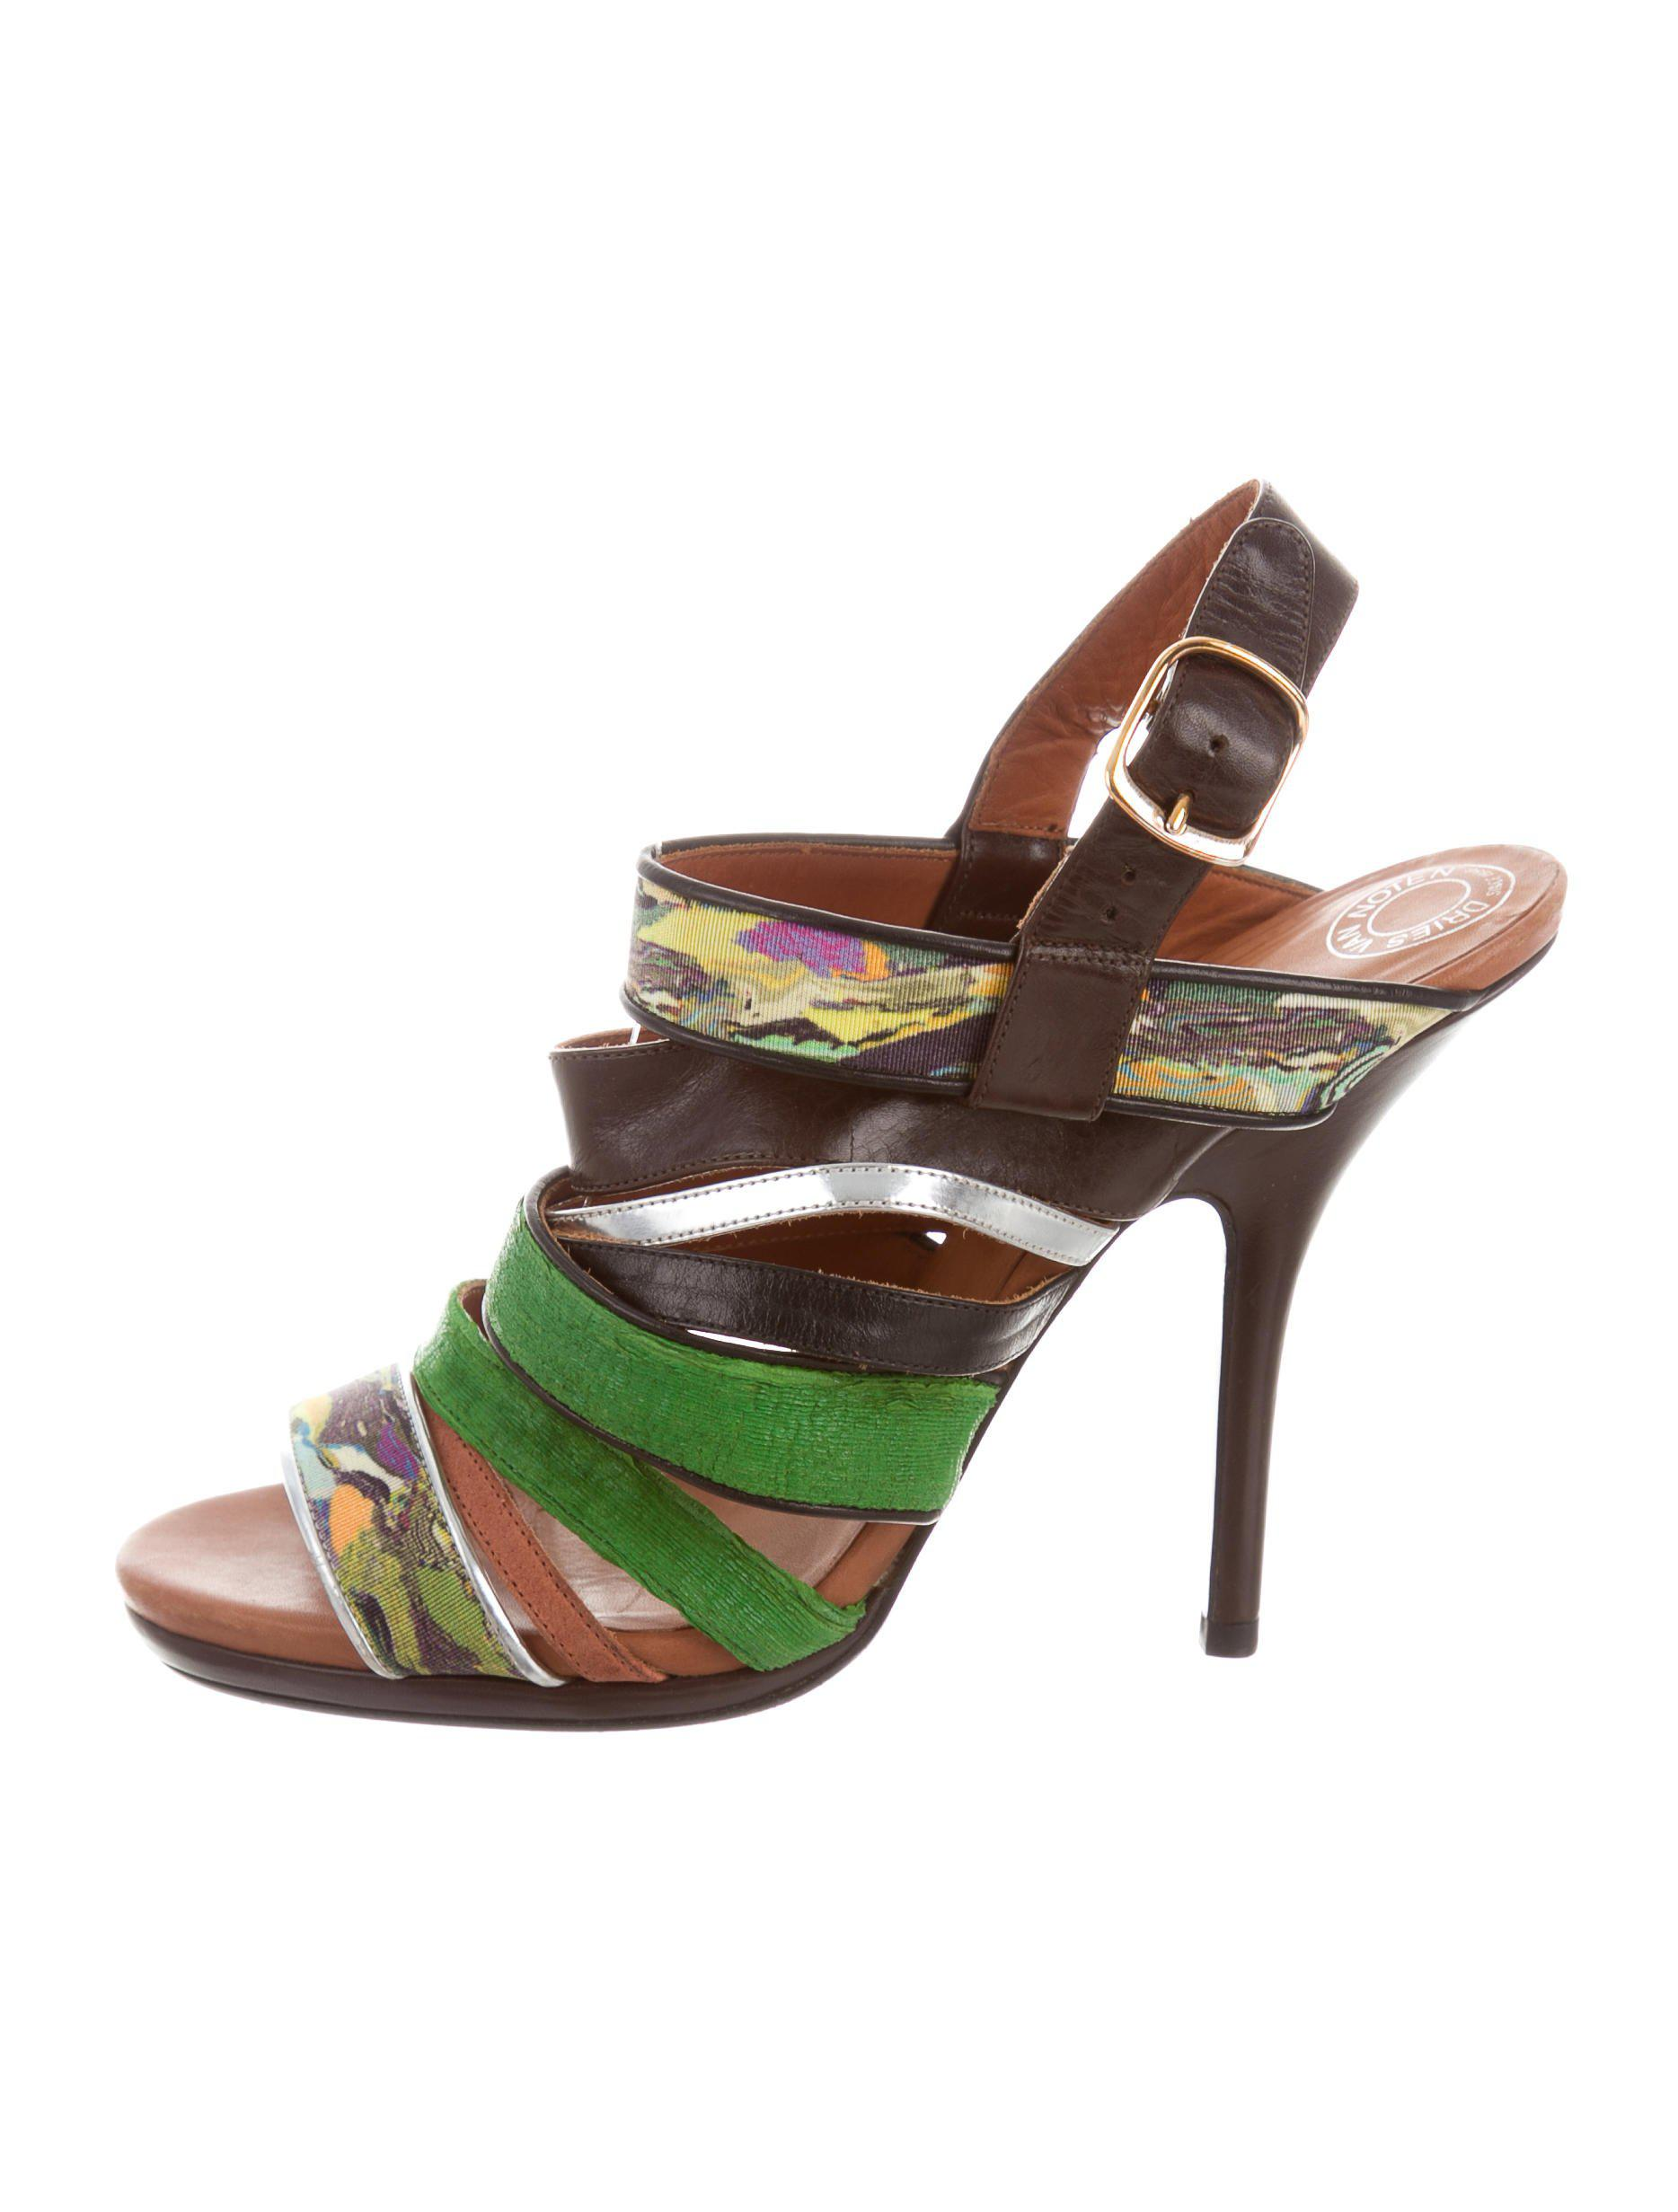 outlet recommend Dries Van Noten Multistrap Wedge Sandals cheap best place free shipping cheap 8FAw5kOW